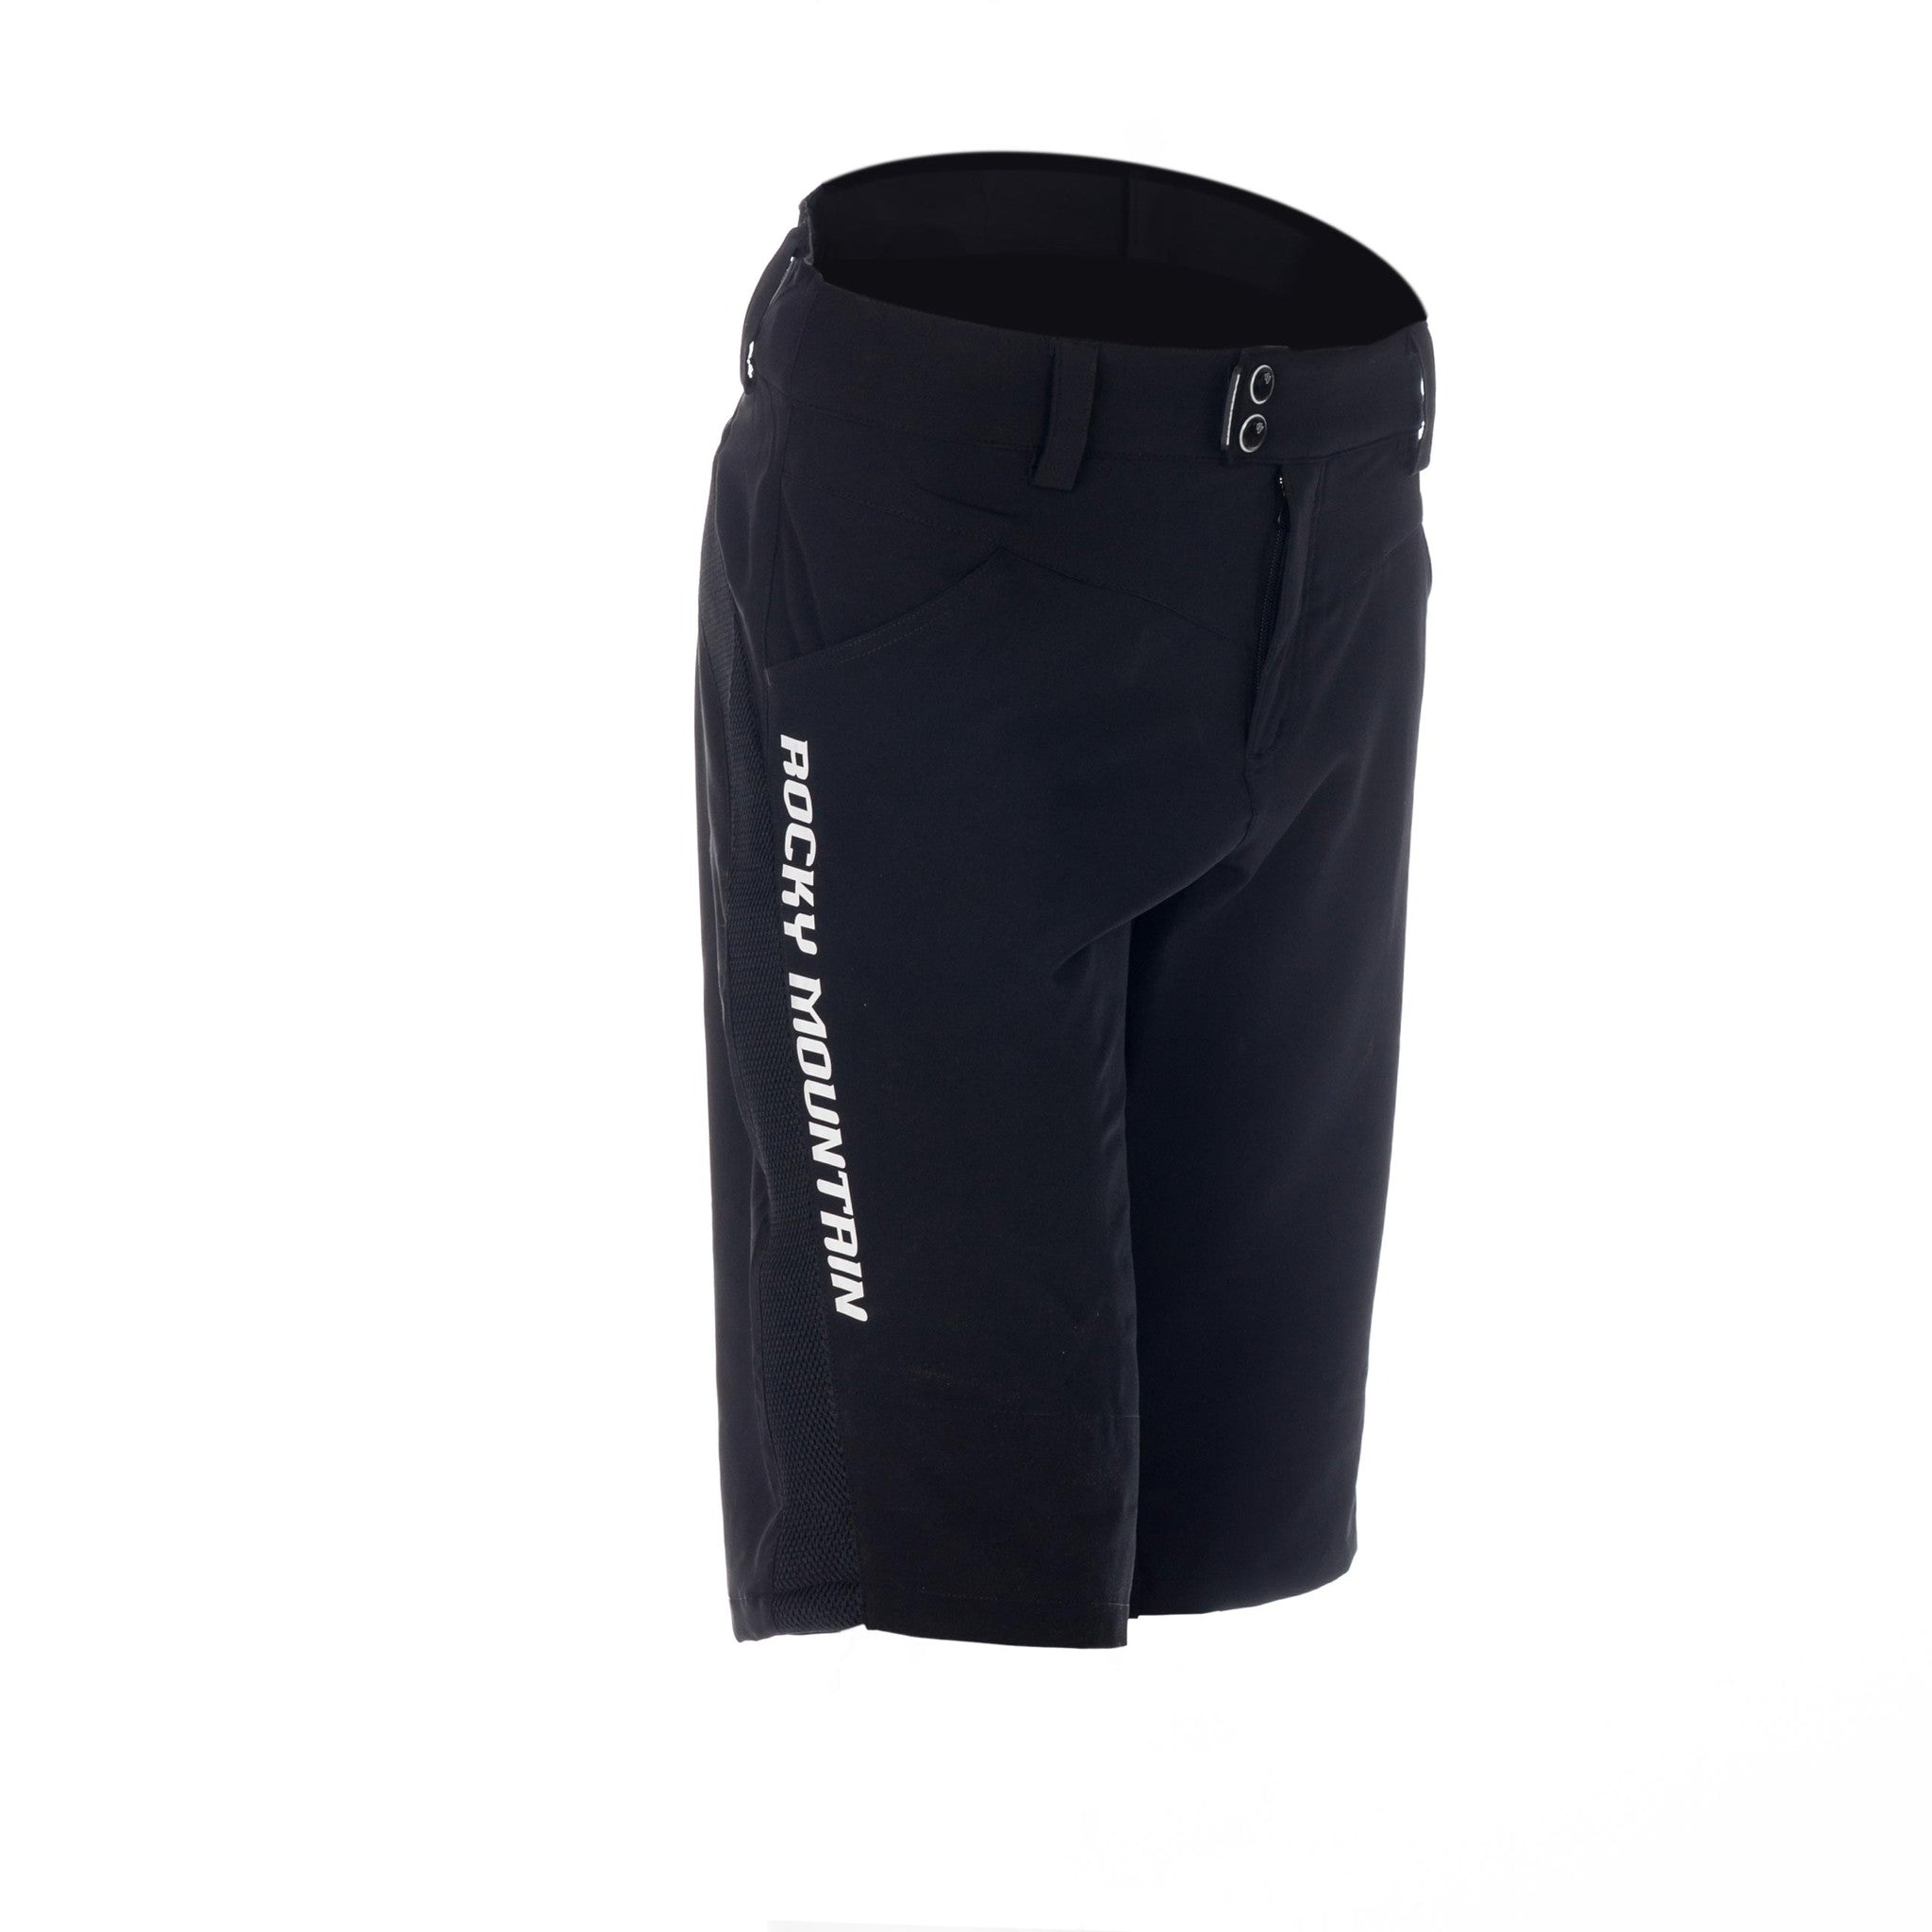 RF SHORTS INDY MEN